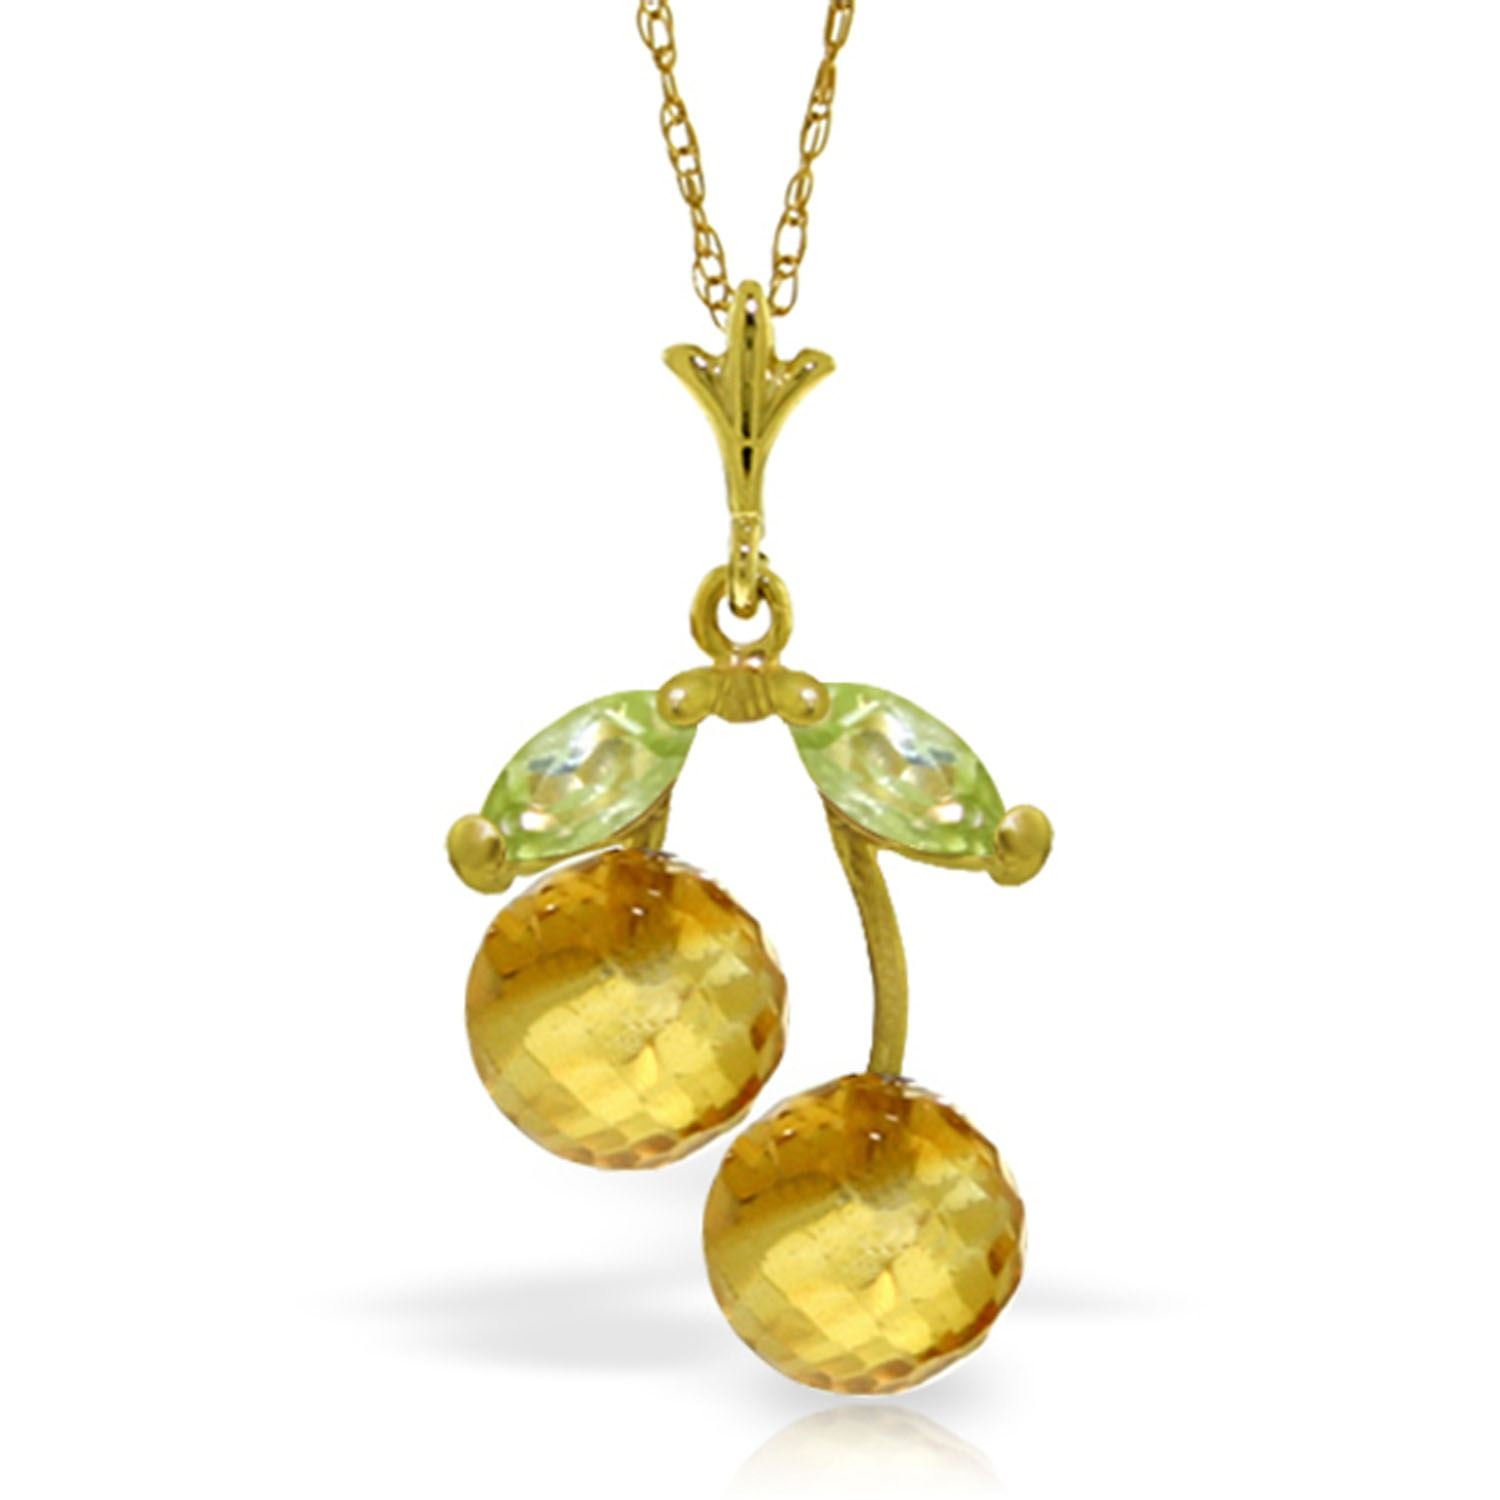 ALARRI 1.45 Carat 14K Solid Gold Summer Love Citrine Peridot Necklace with 20 Inch Chain Length